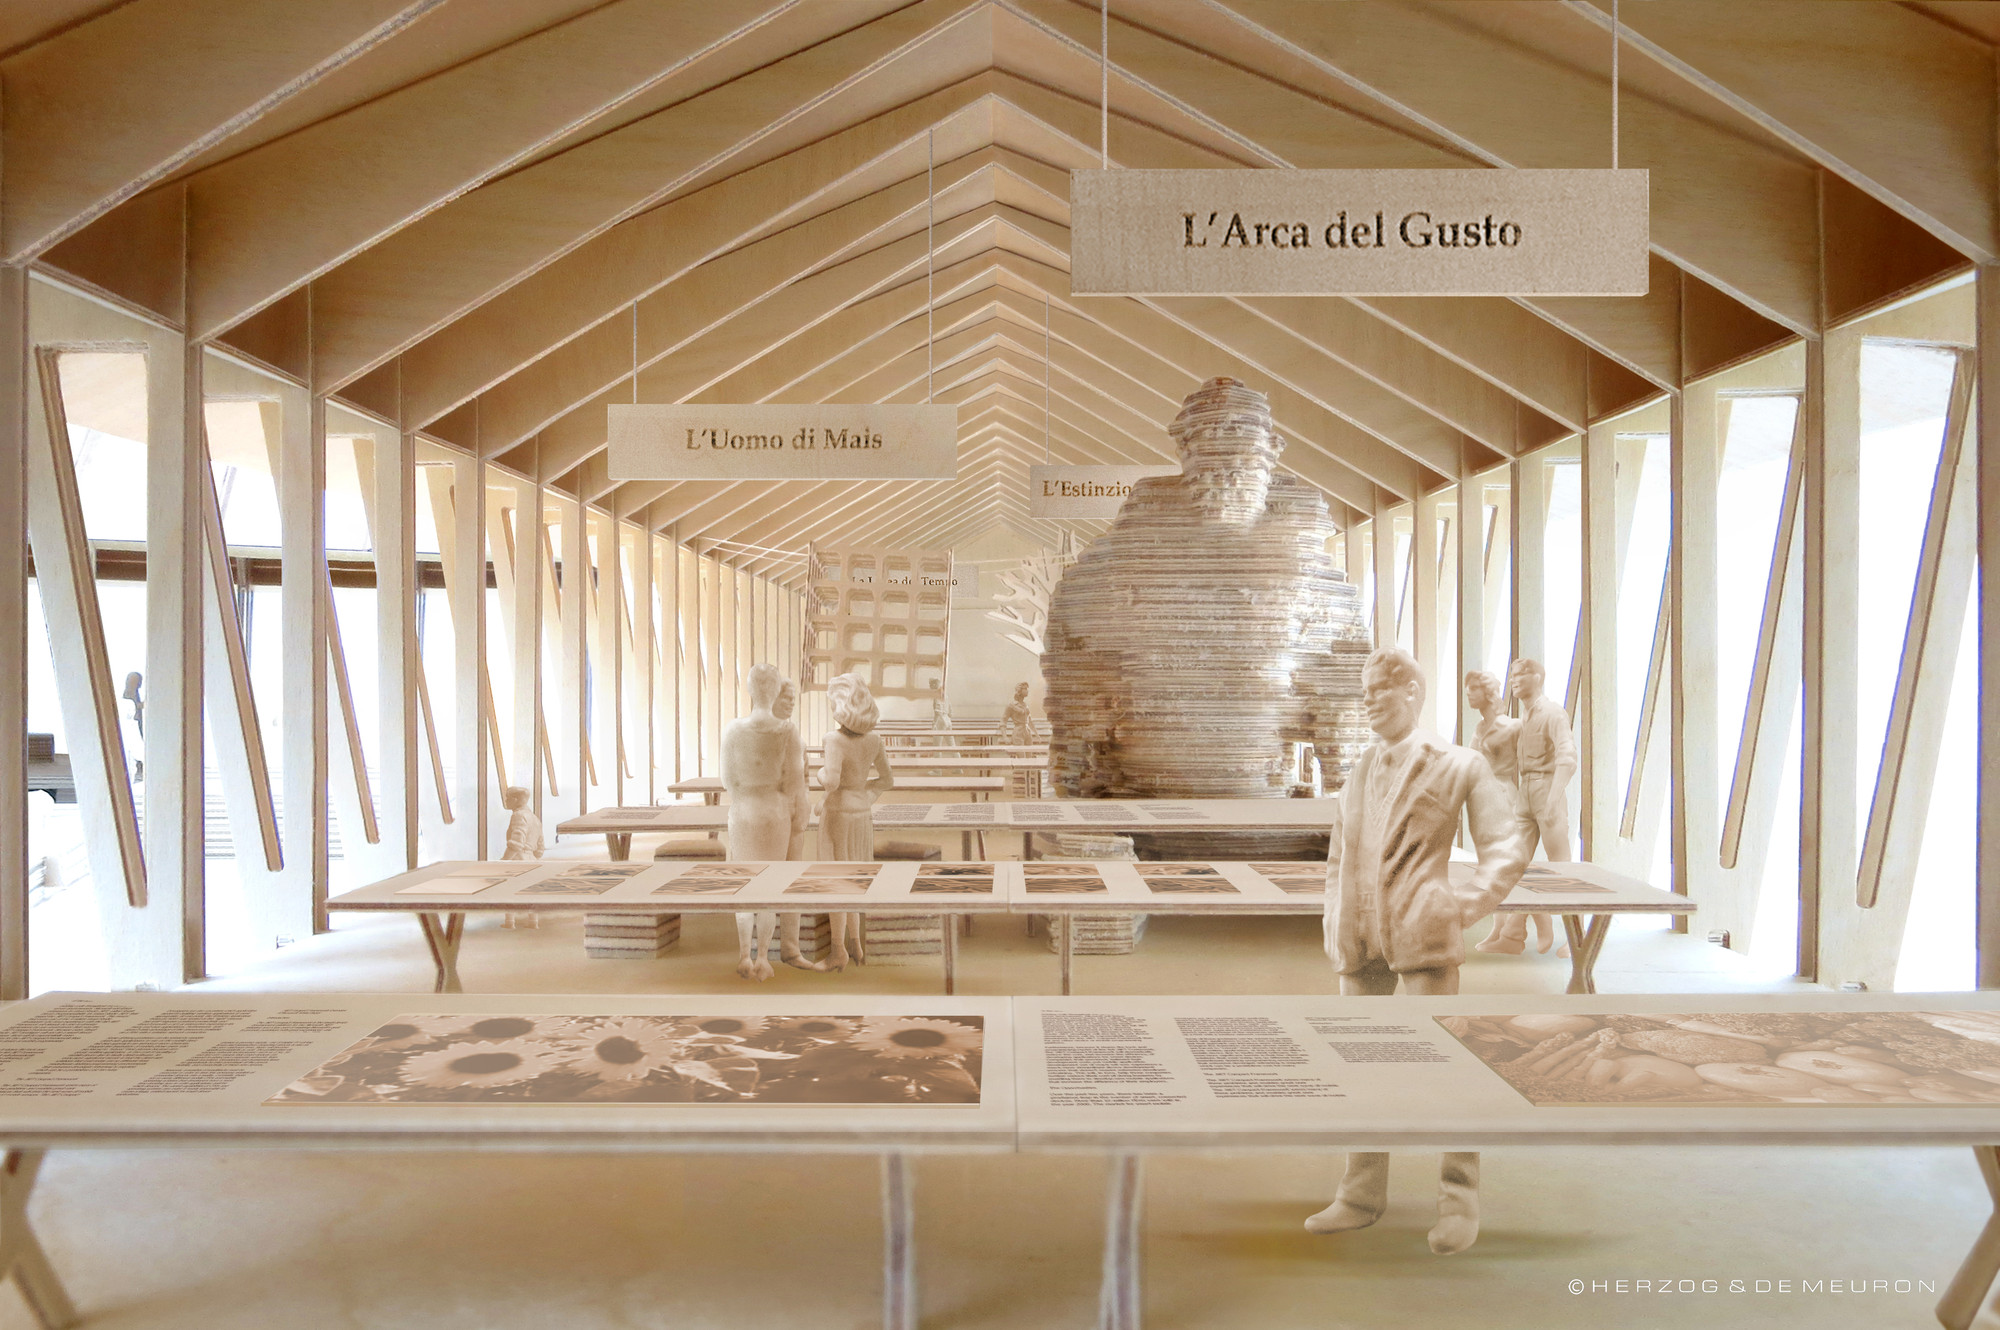 Milan Expo 2015: Herzog & de Meuron Designs Slow Food Pavilion for Carlo Petrini, Courtesy of Herzog & de Meuron